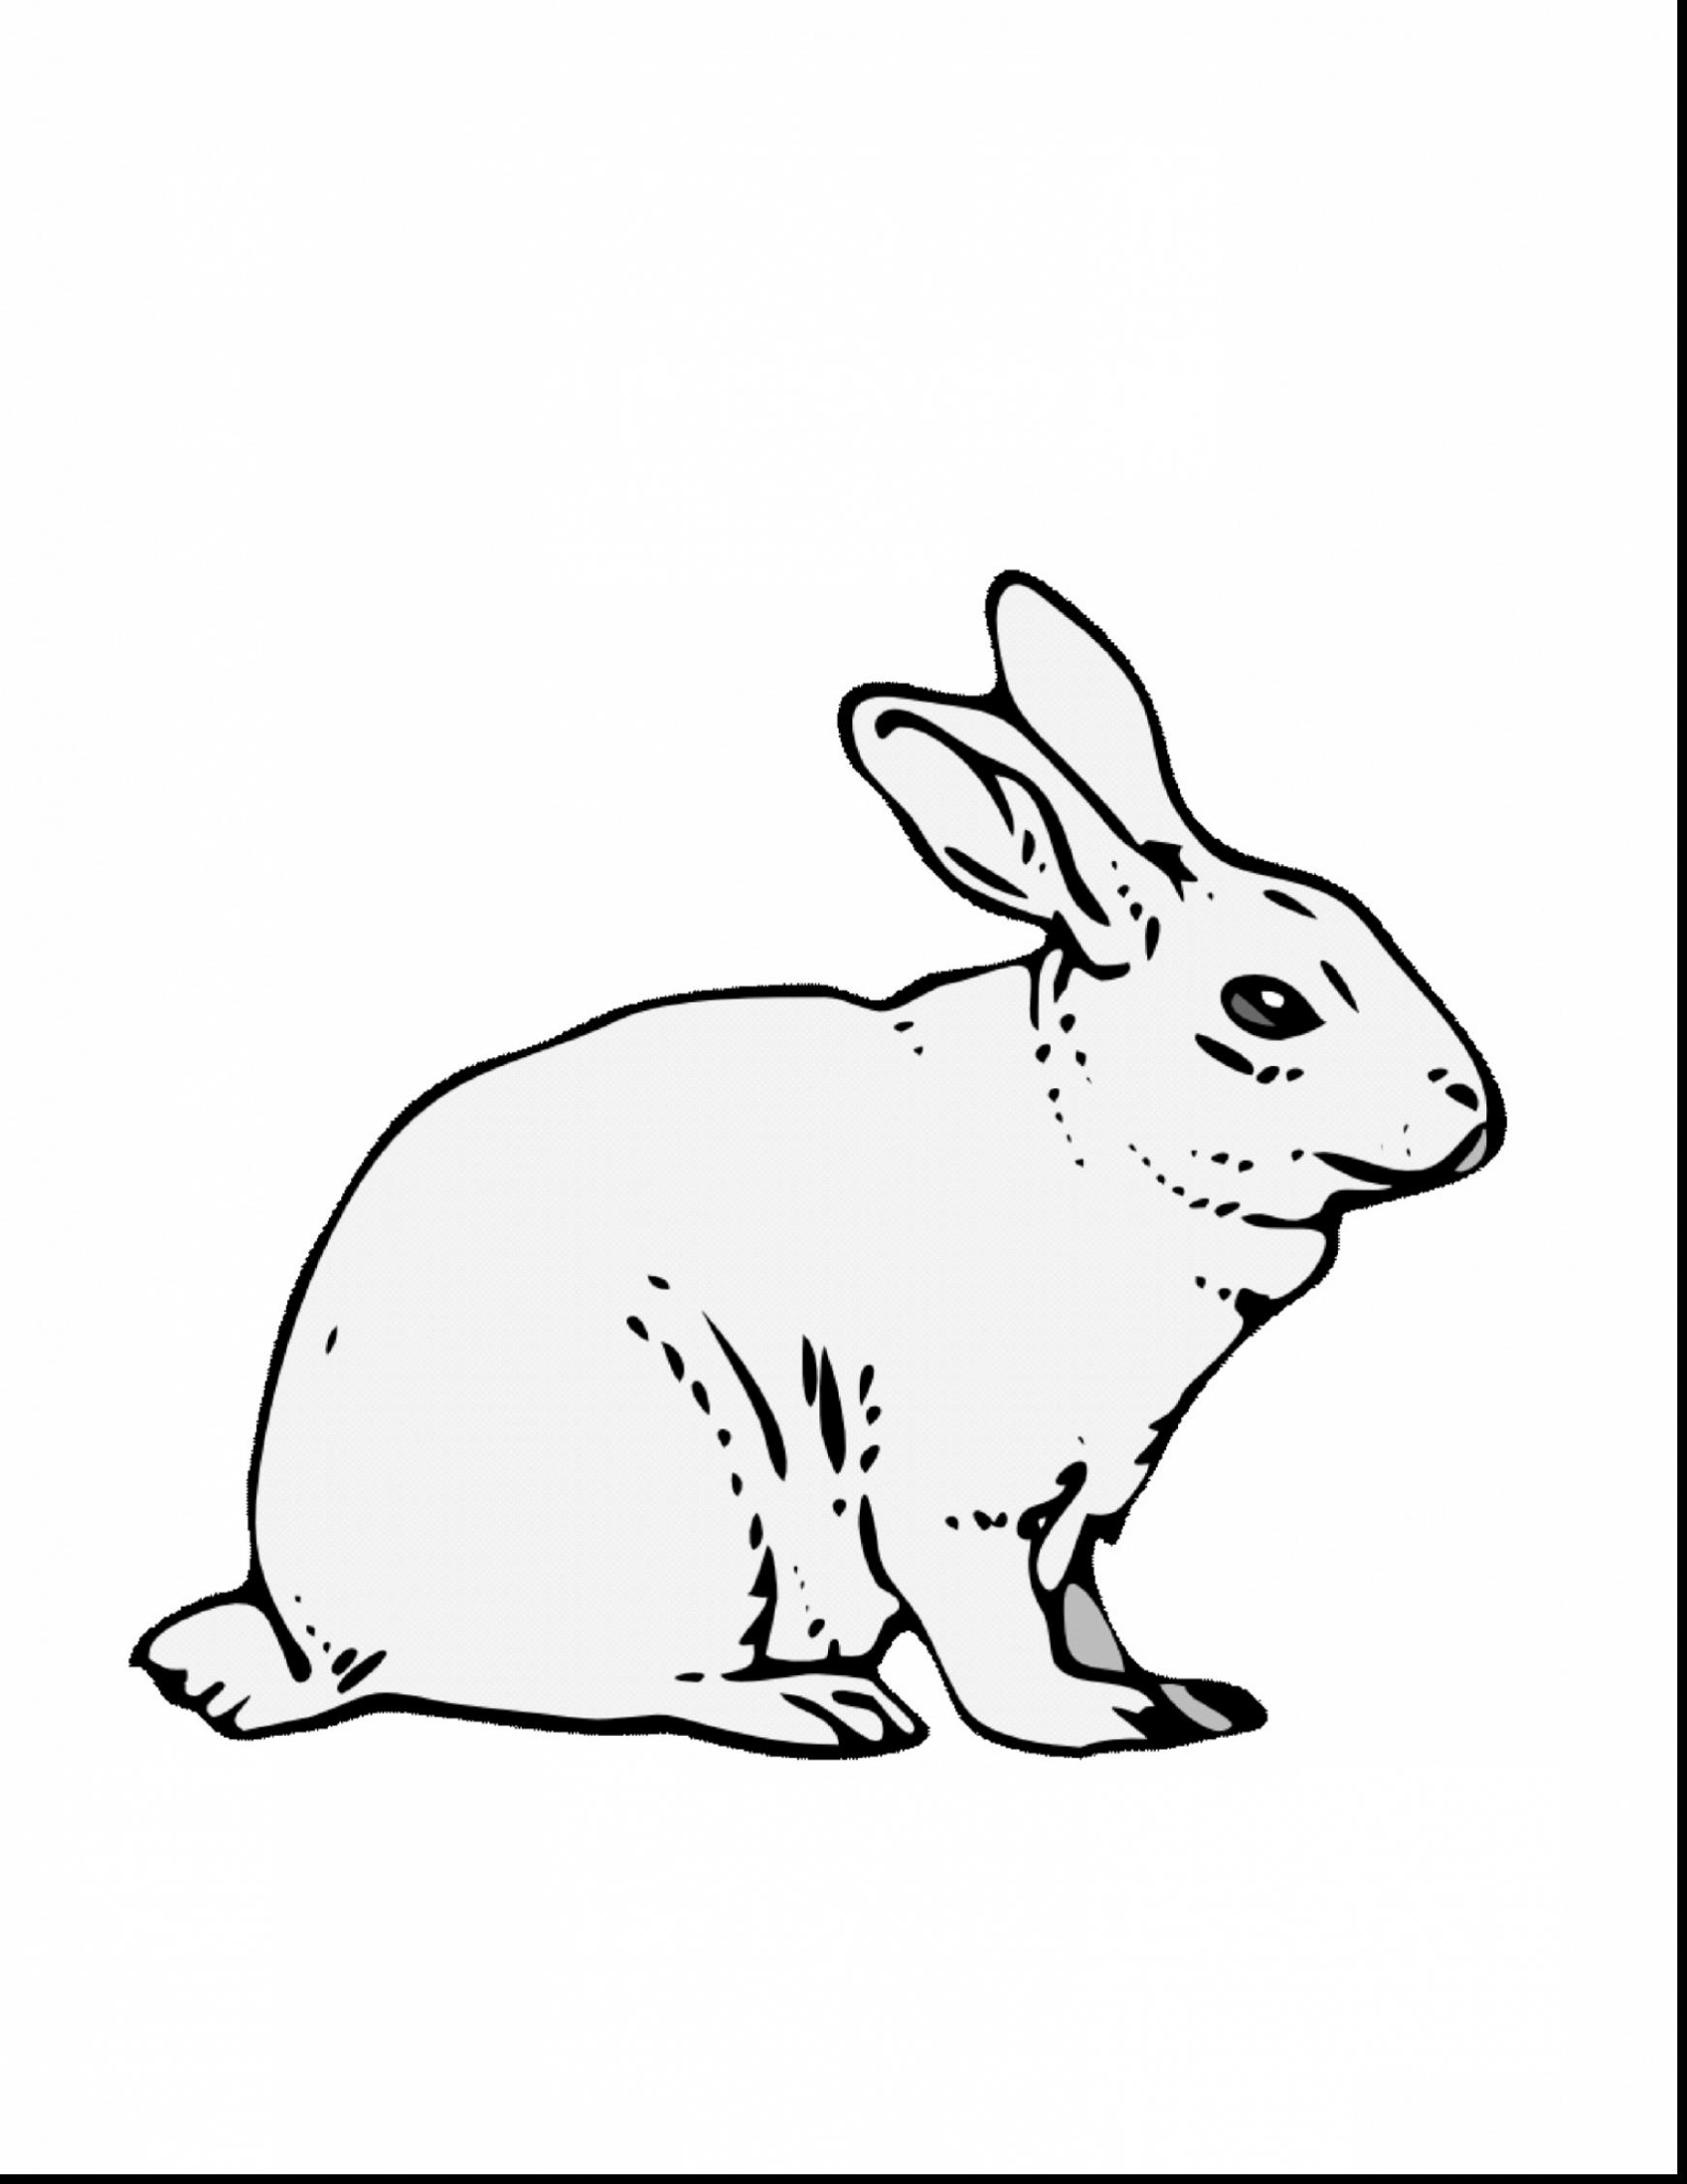 1740x2252 Unbelievable Jack Rabbit Coloring Page With Rabbit Coloring Pages